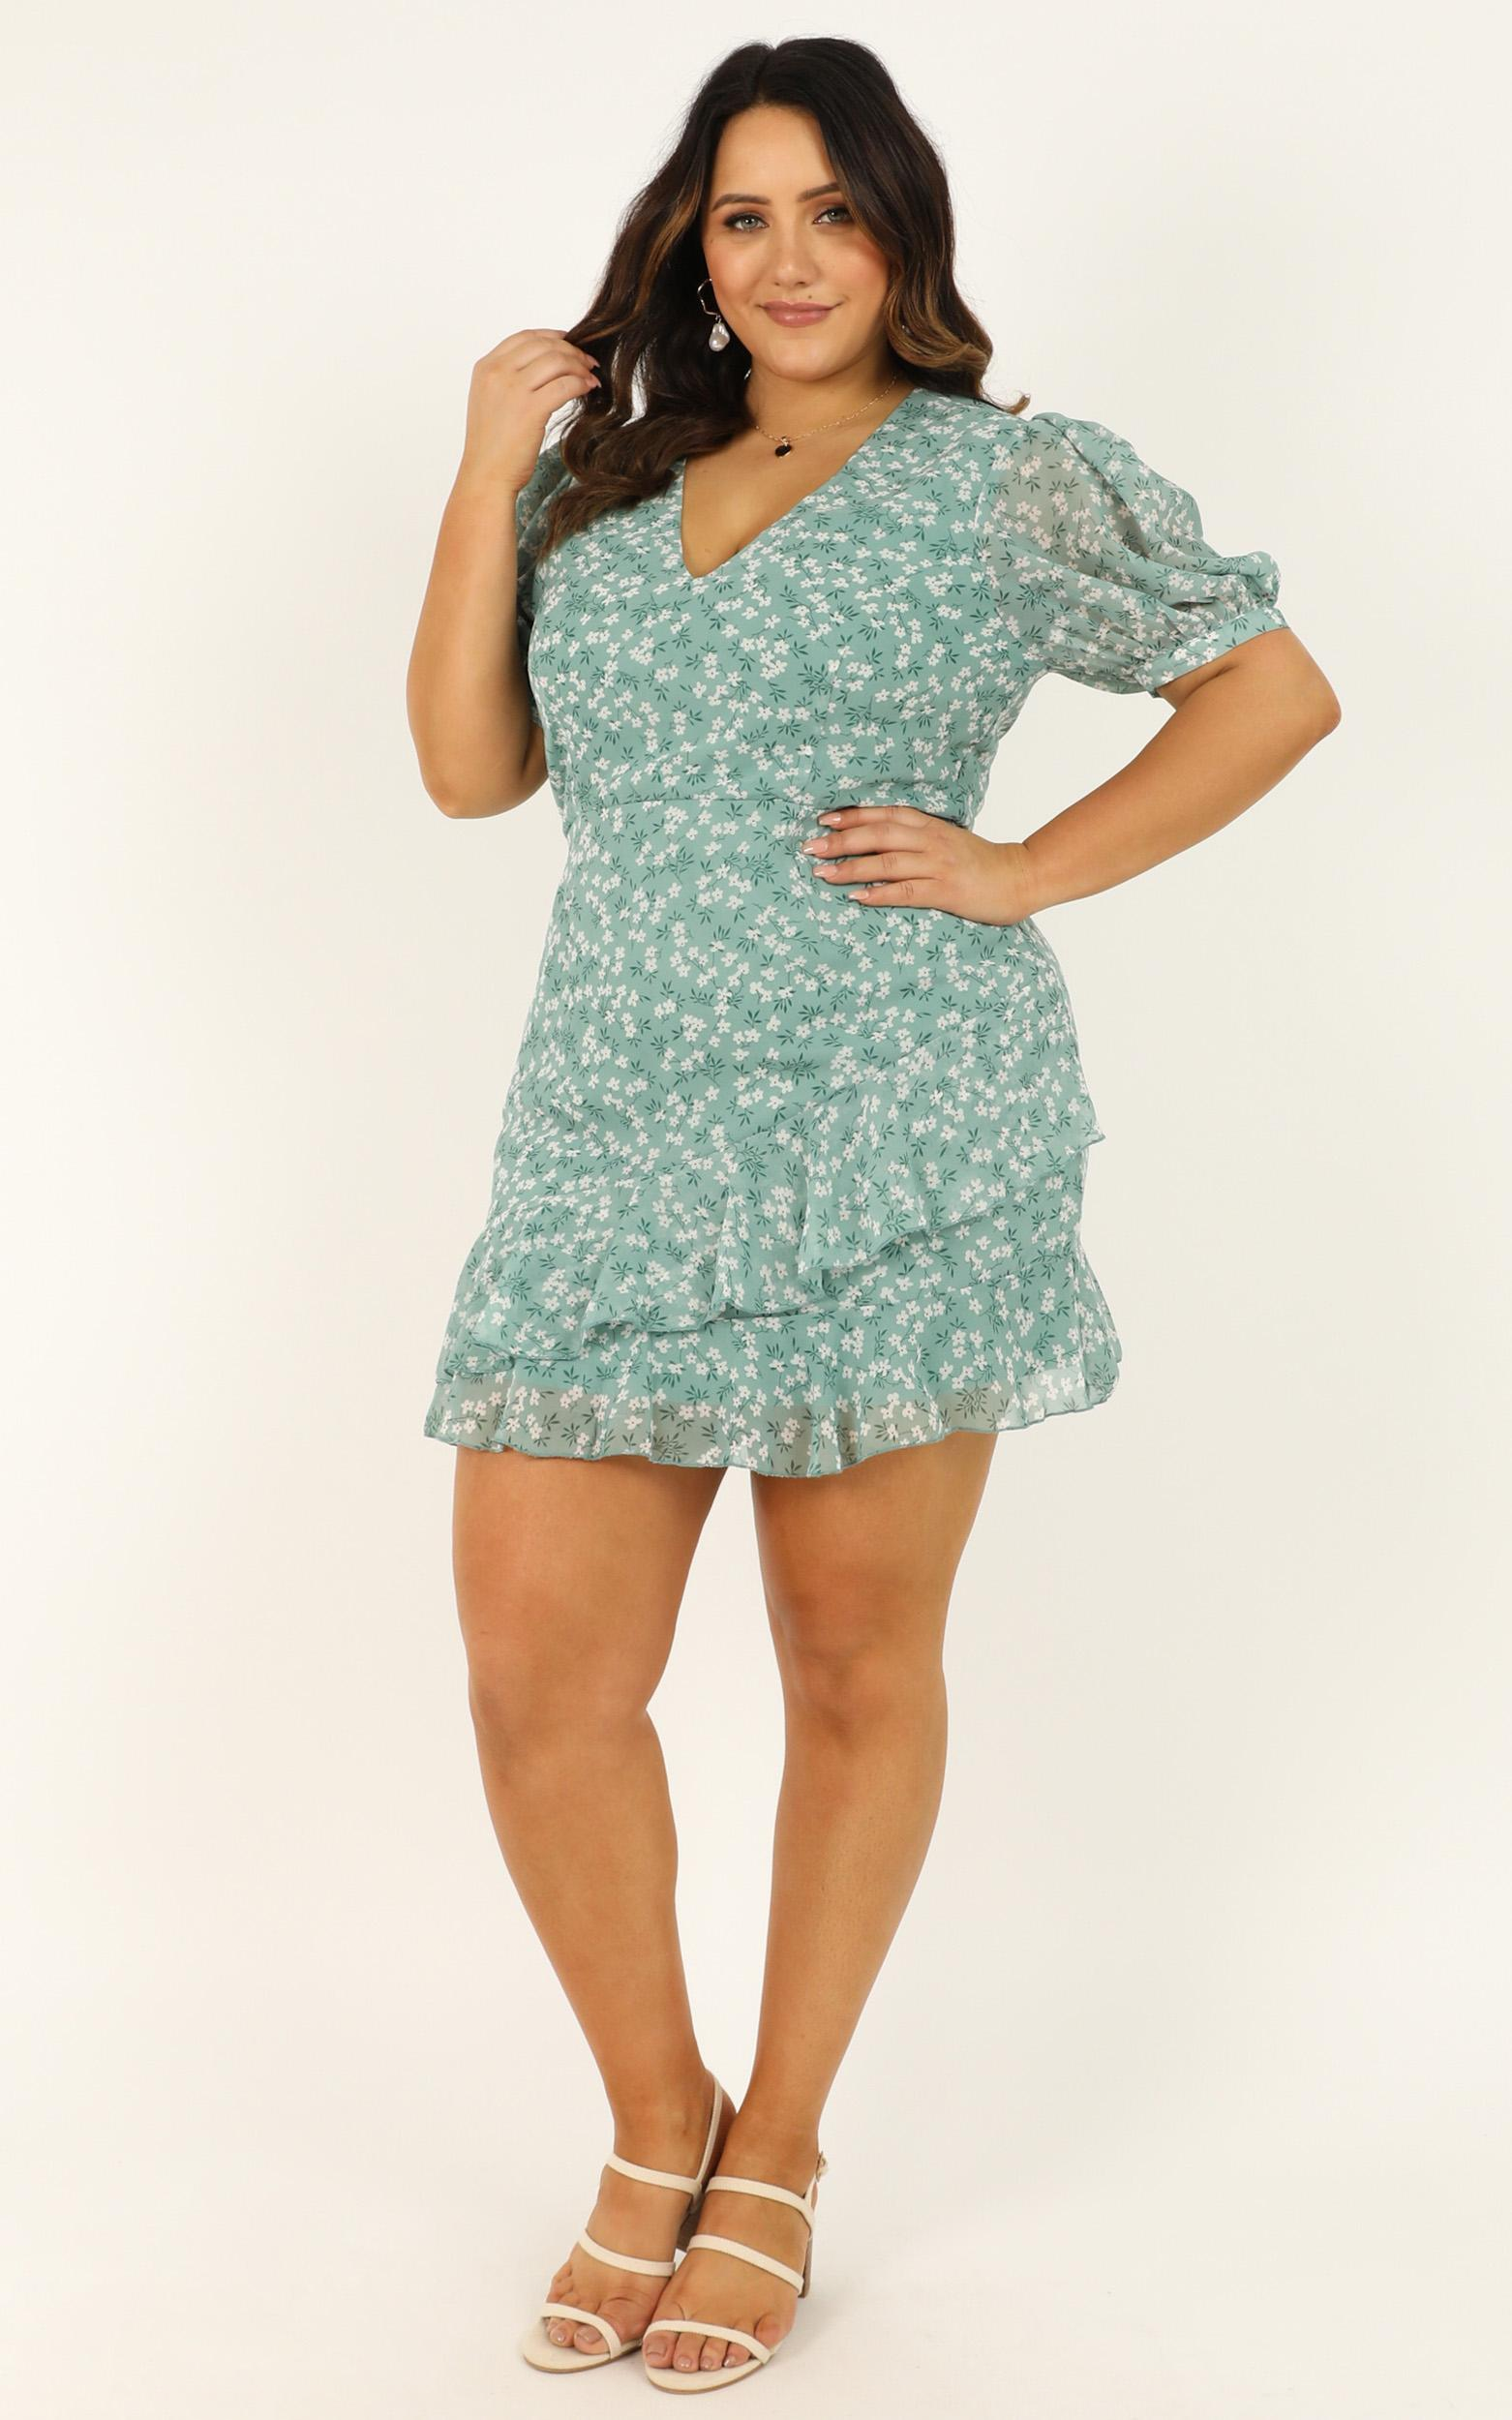 Chill Zone Dress in sage floral - 20 (XXXXL), Sage, hi-res image number null